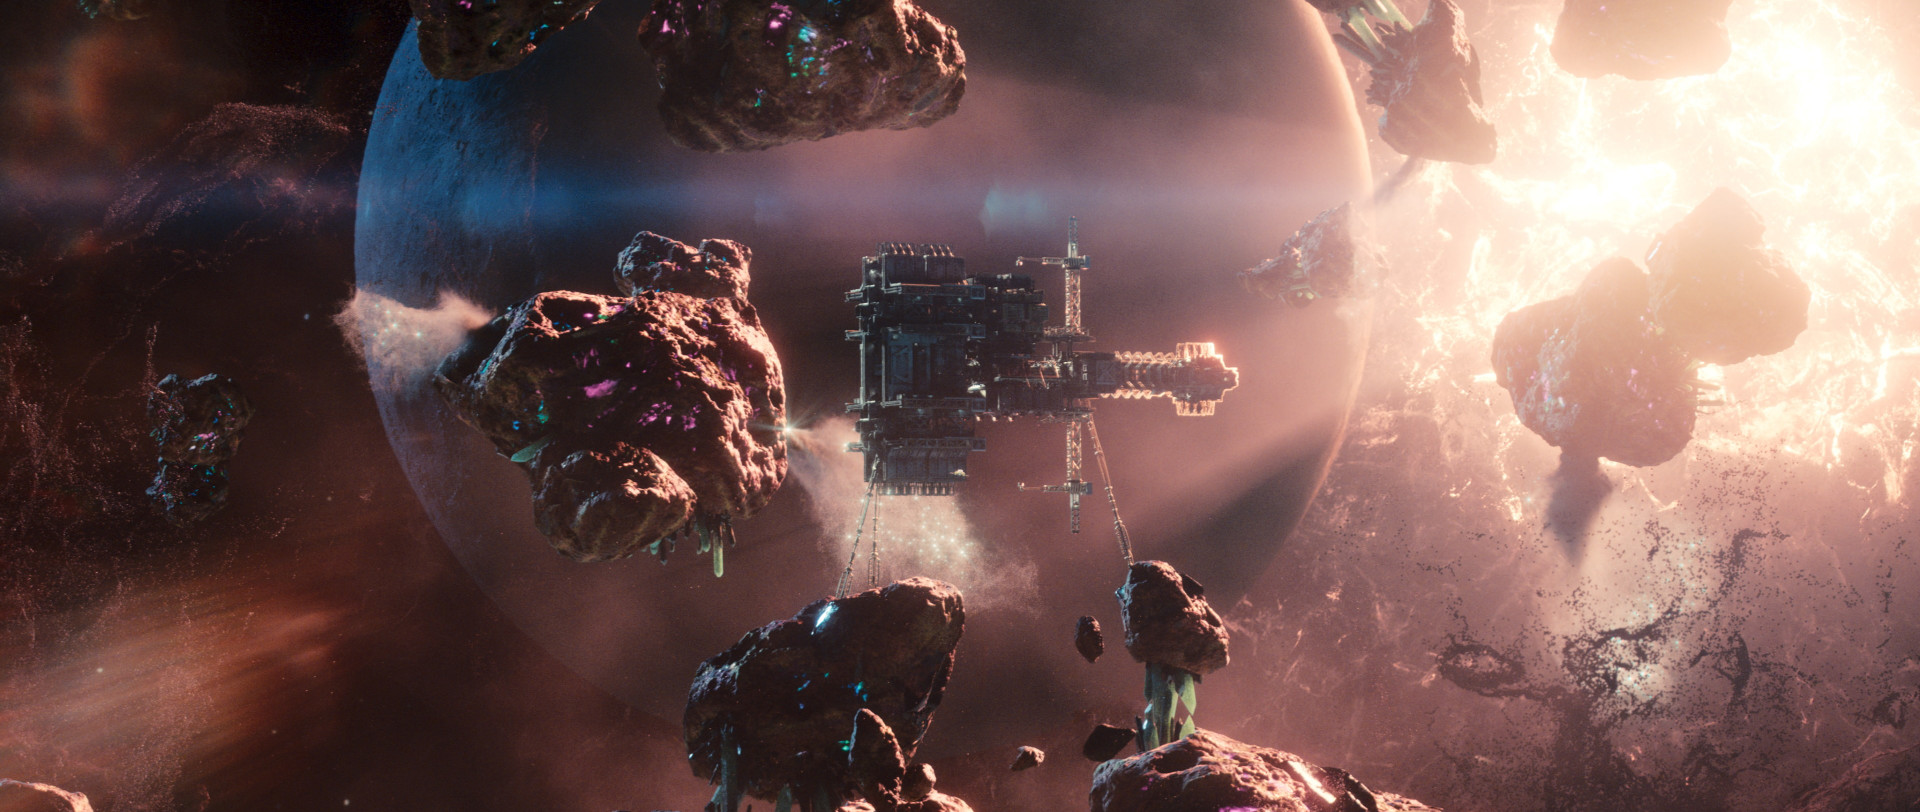 Intergalactic - visual effects by Milk